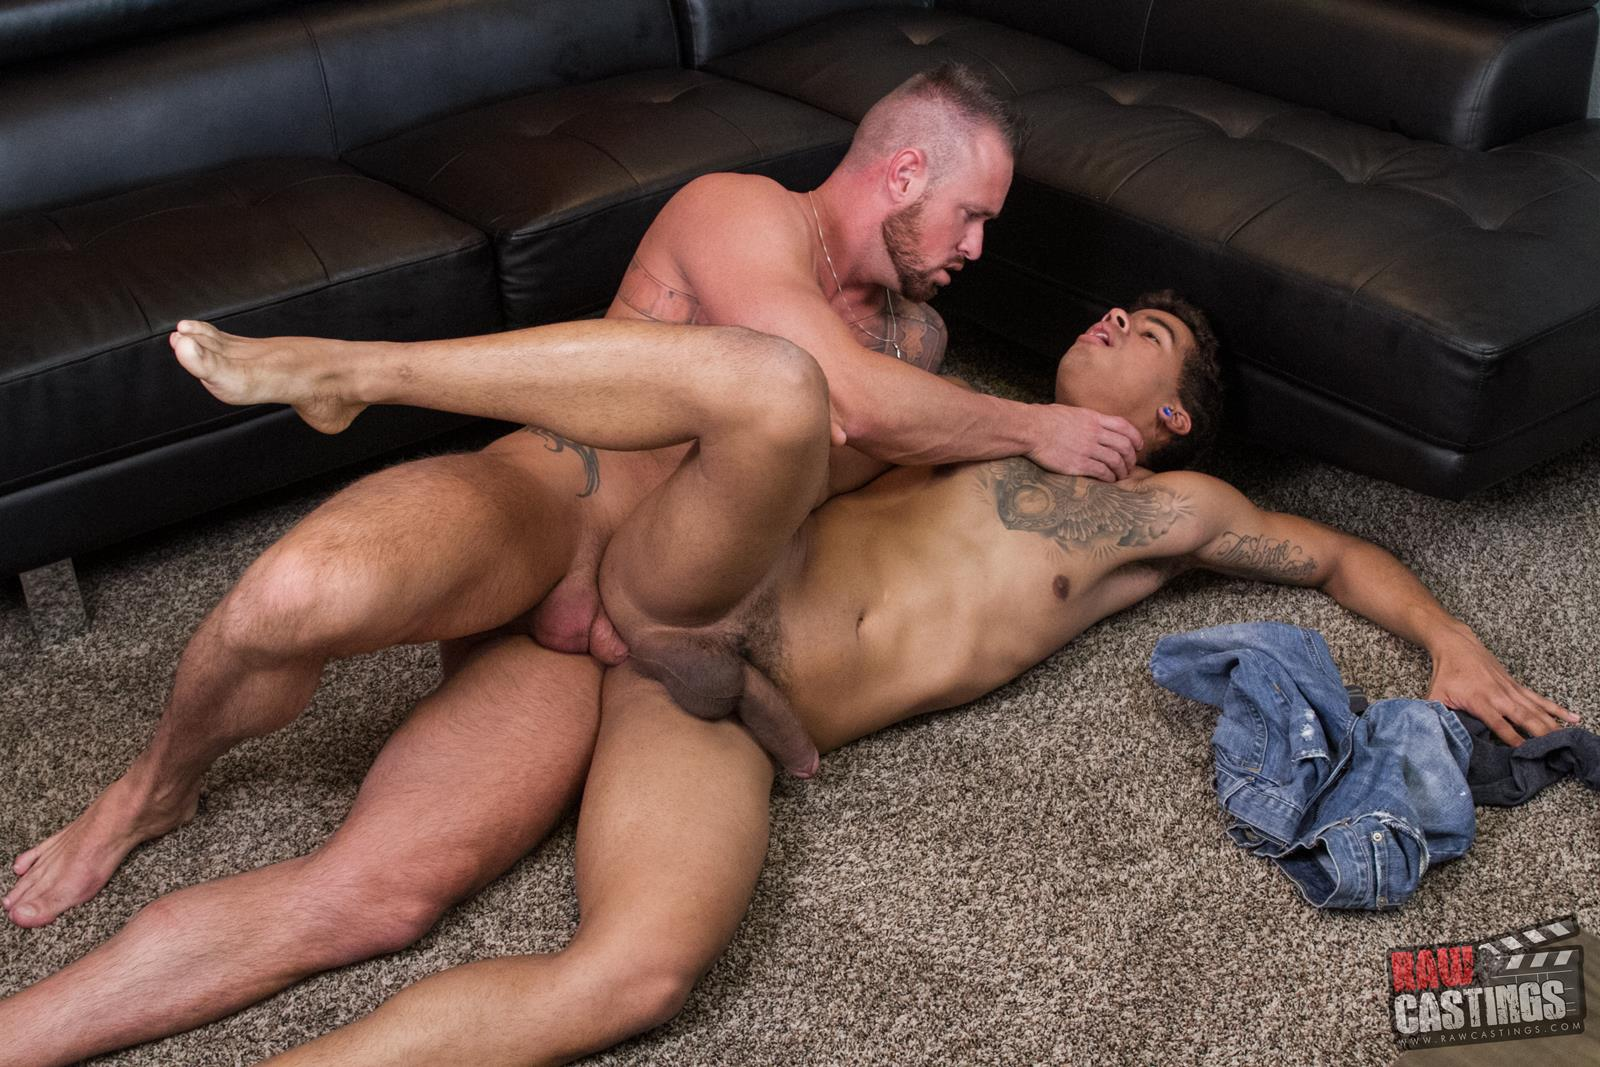 Raw Castings Diego Diaz Bareback Gay Porn Audition Video 15 Getting Barebacked During A Gay Porn Audition